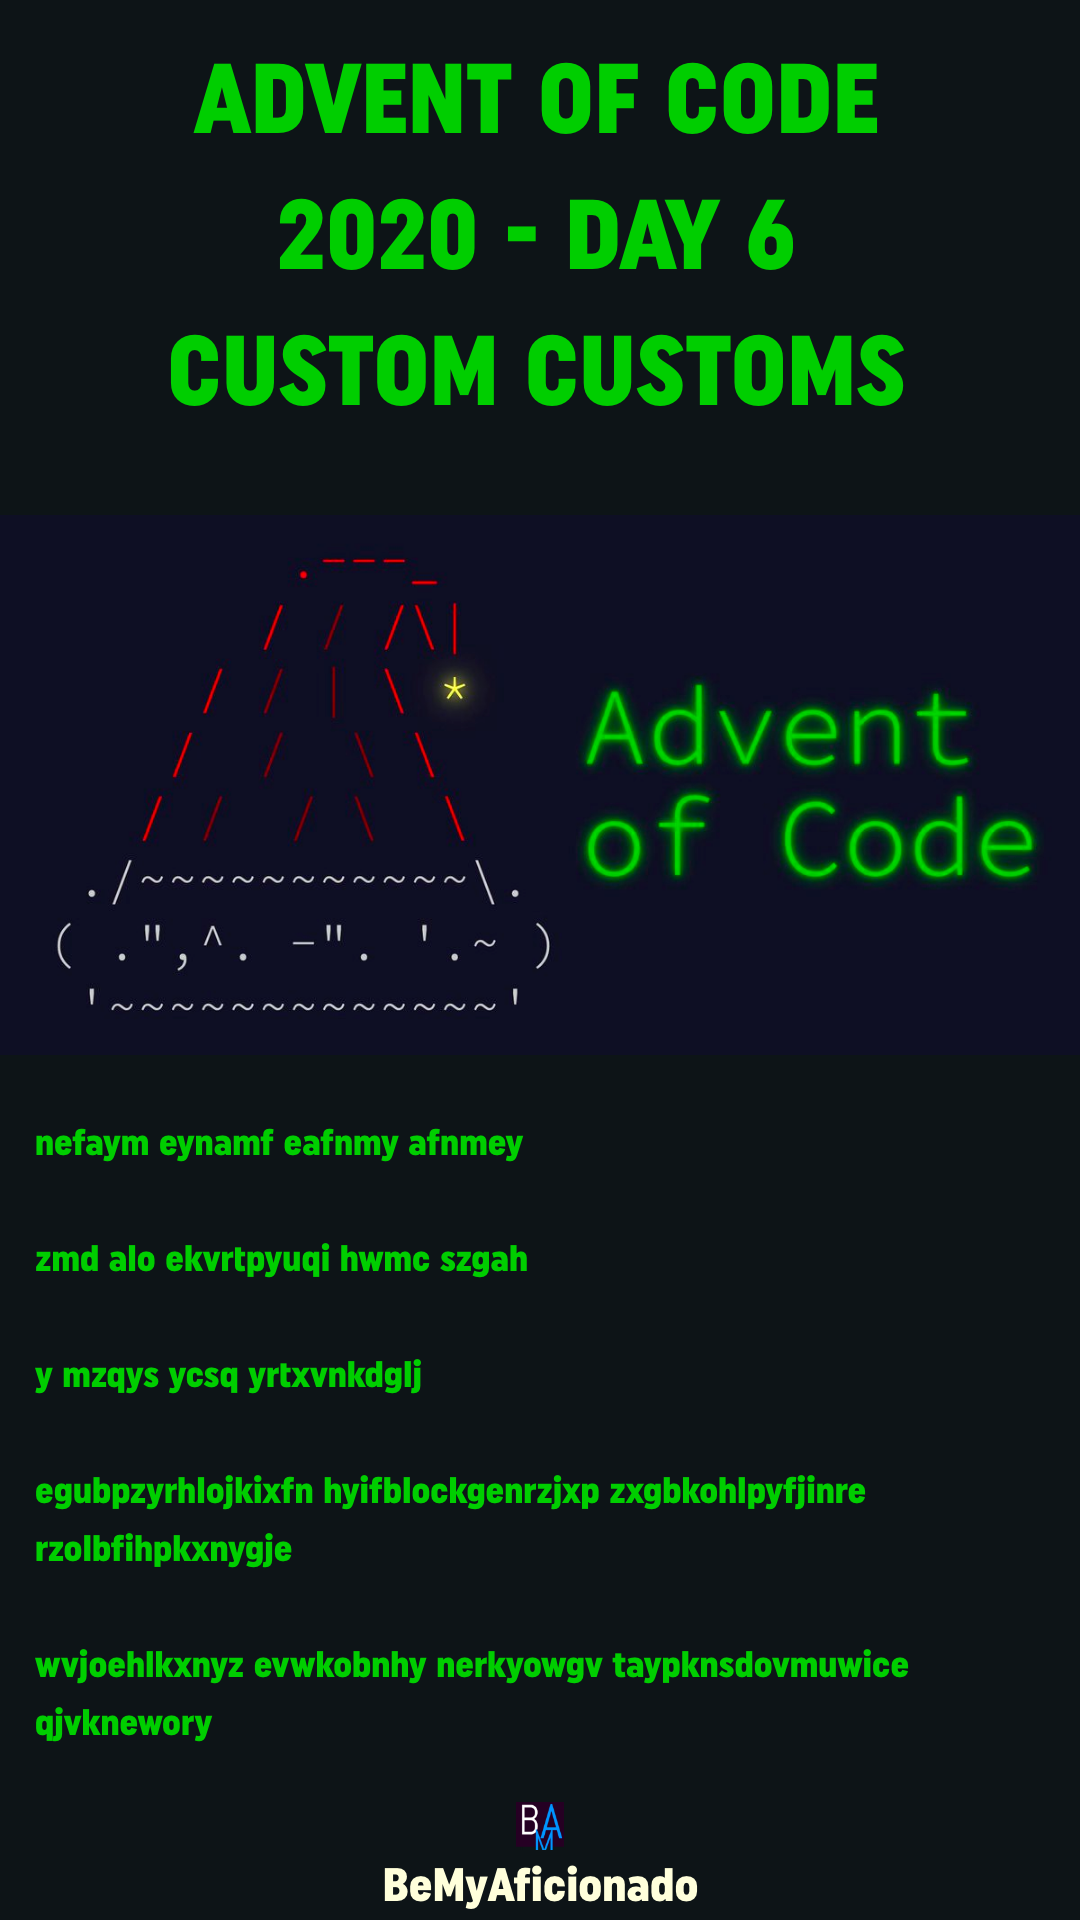 Advent of Code 2020 - DAY 6